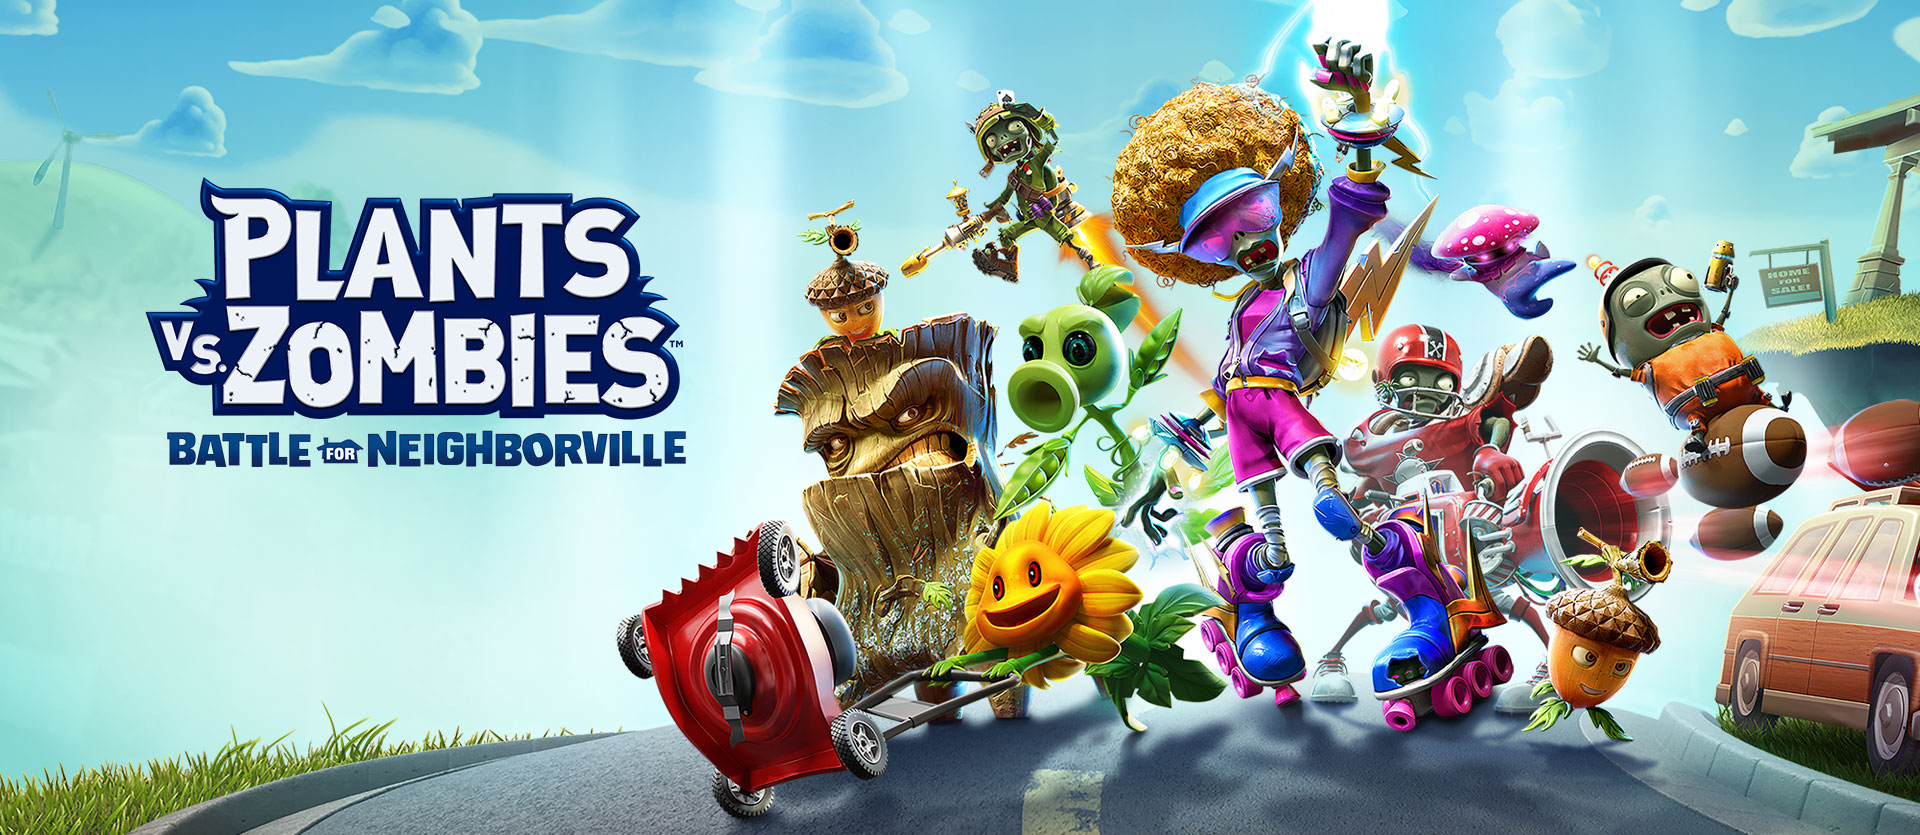 Plants vs. Zombies: Battle for Neighborville, flere poserende karakterer på en gade